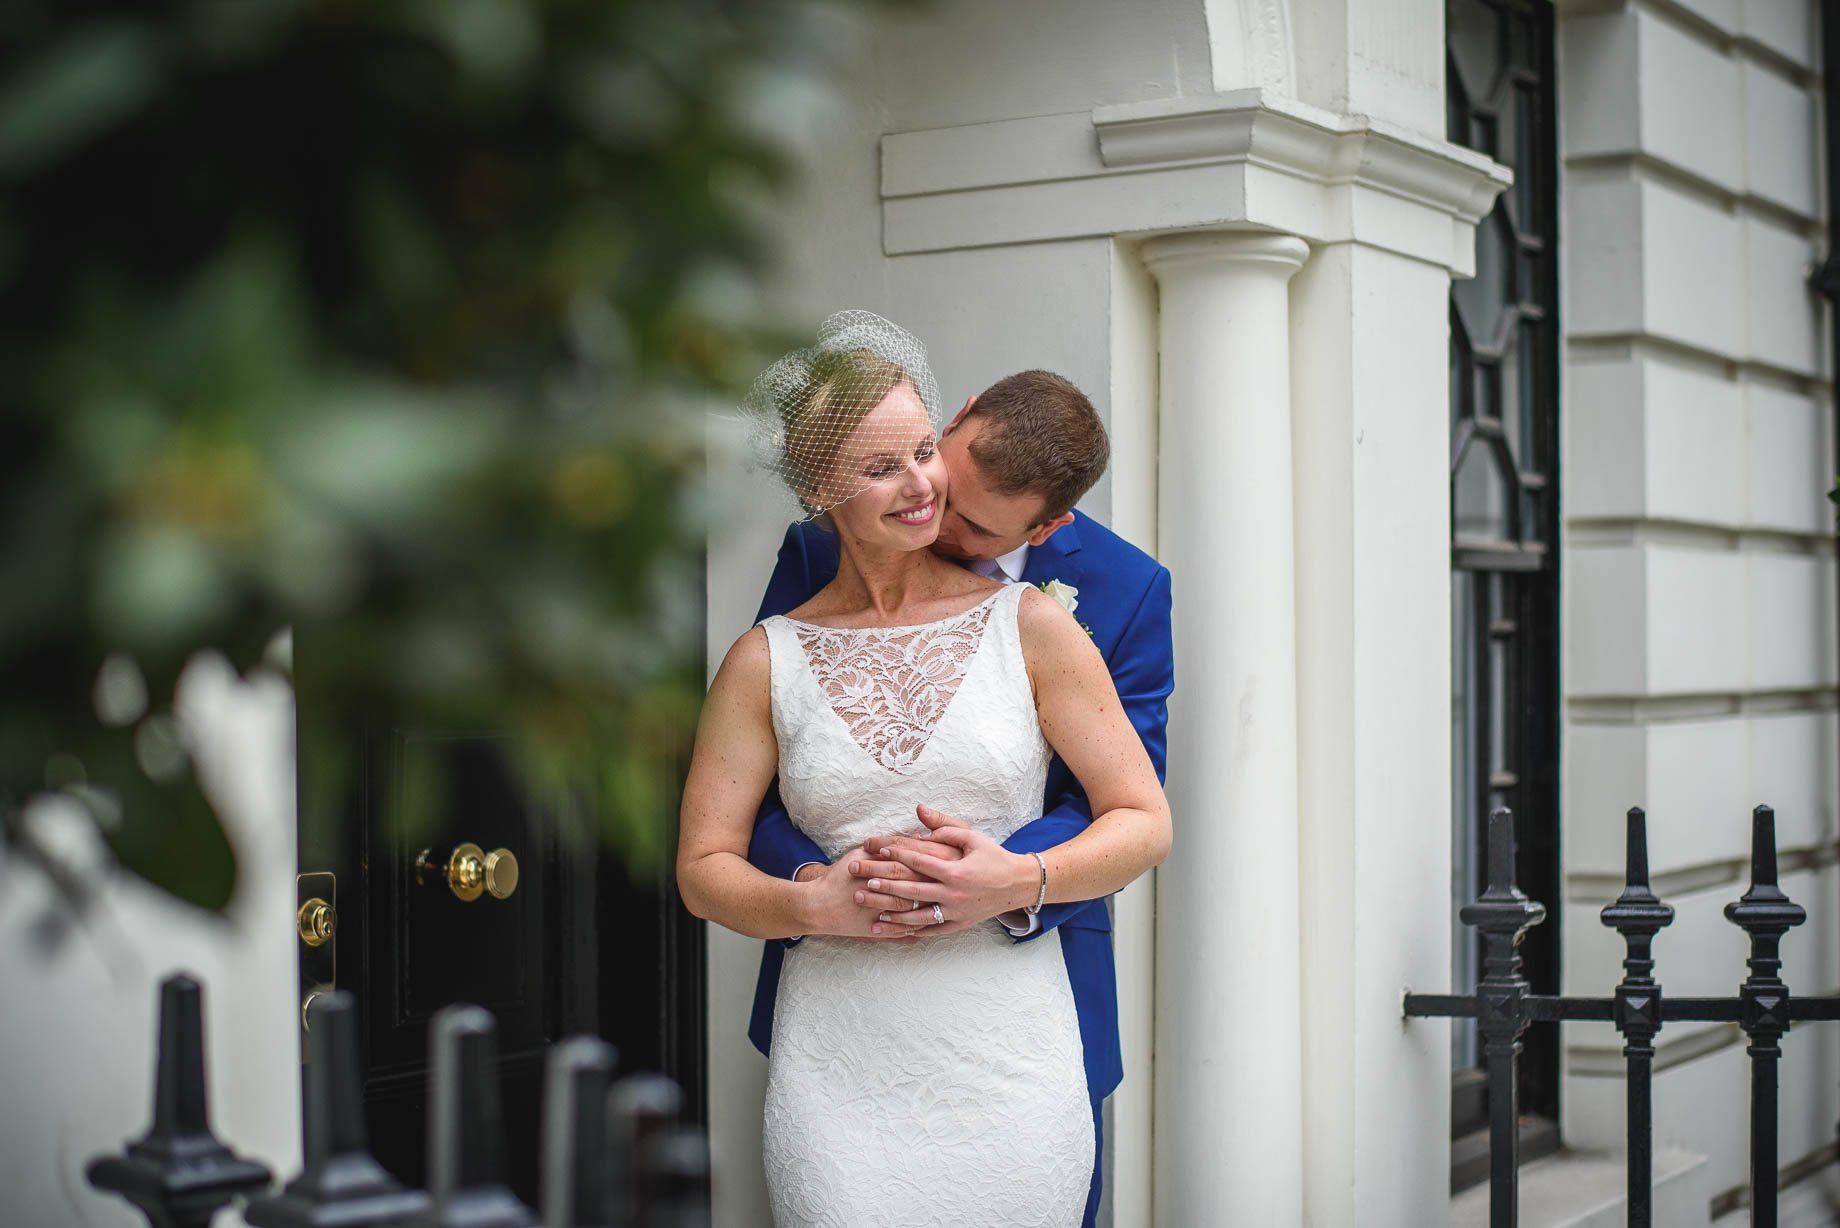 Bllomsbury House wedding photography in London - Katie and Taylor (83 of 156)